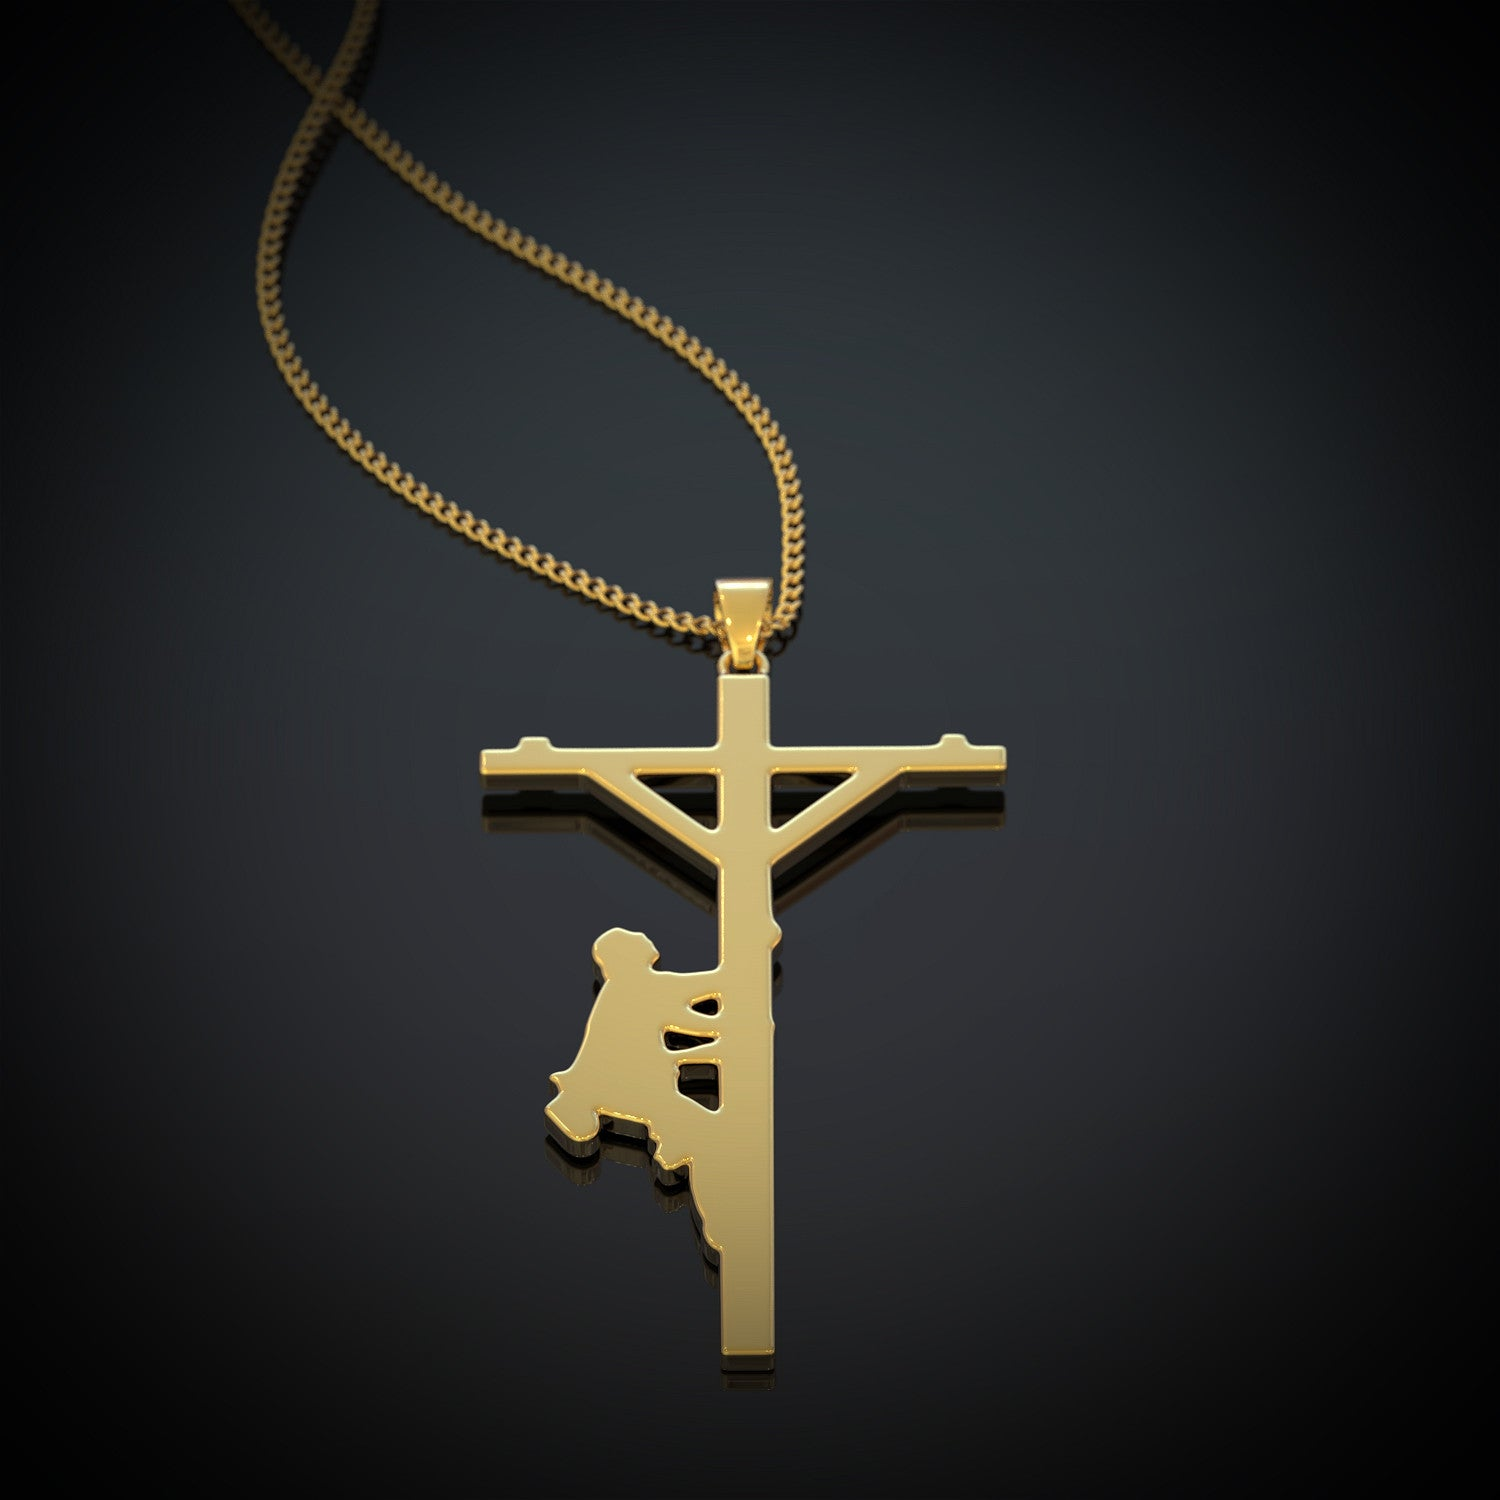 Lineman Cross Necklace All Things Through Christ